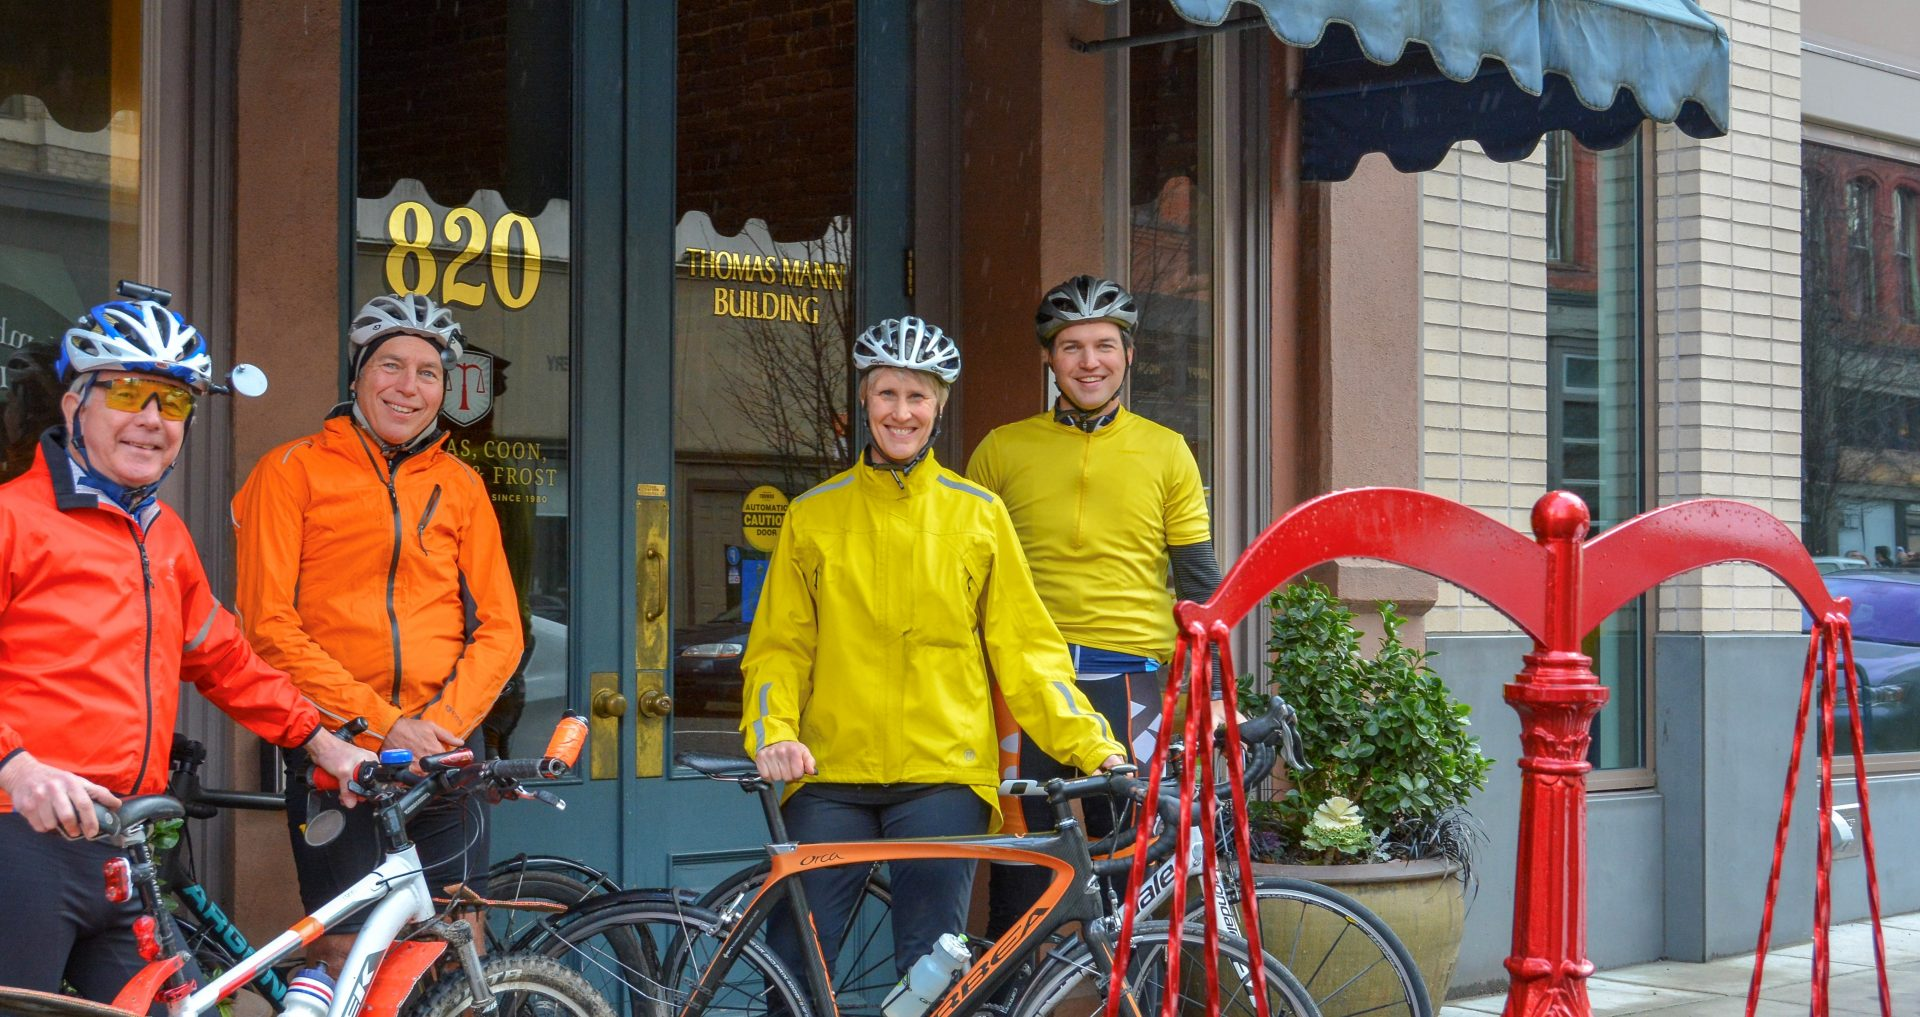 Four people in brighlty colored jackets stand with bicycles in fornt of law office.